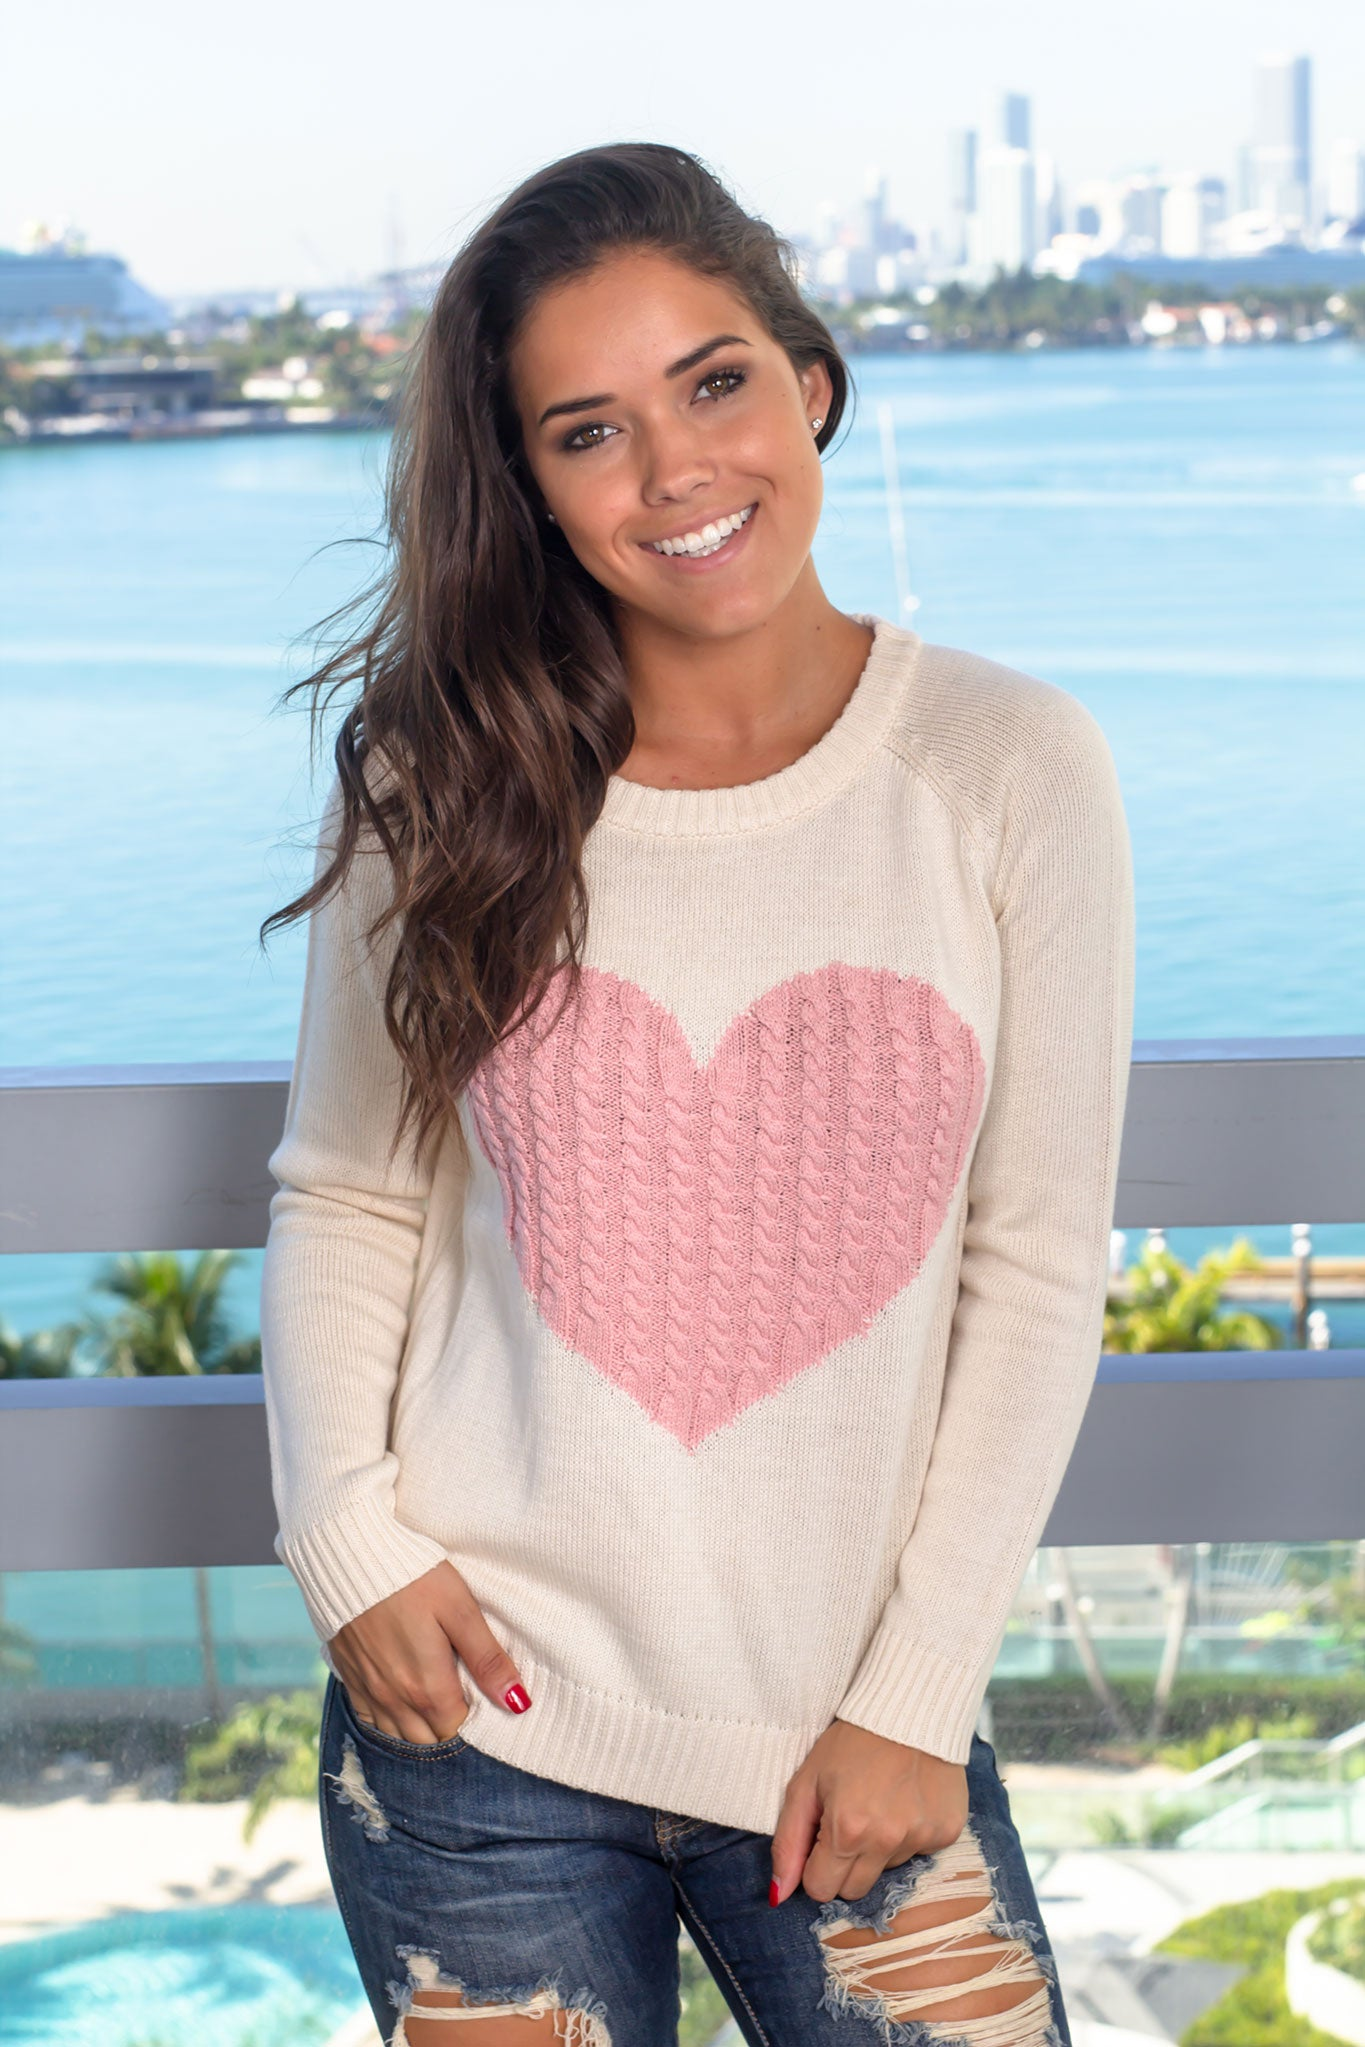 Oatmeal Knit Sweater with Heart Detail